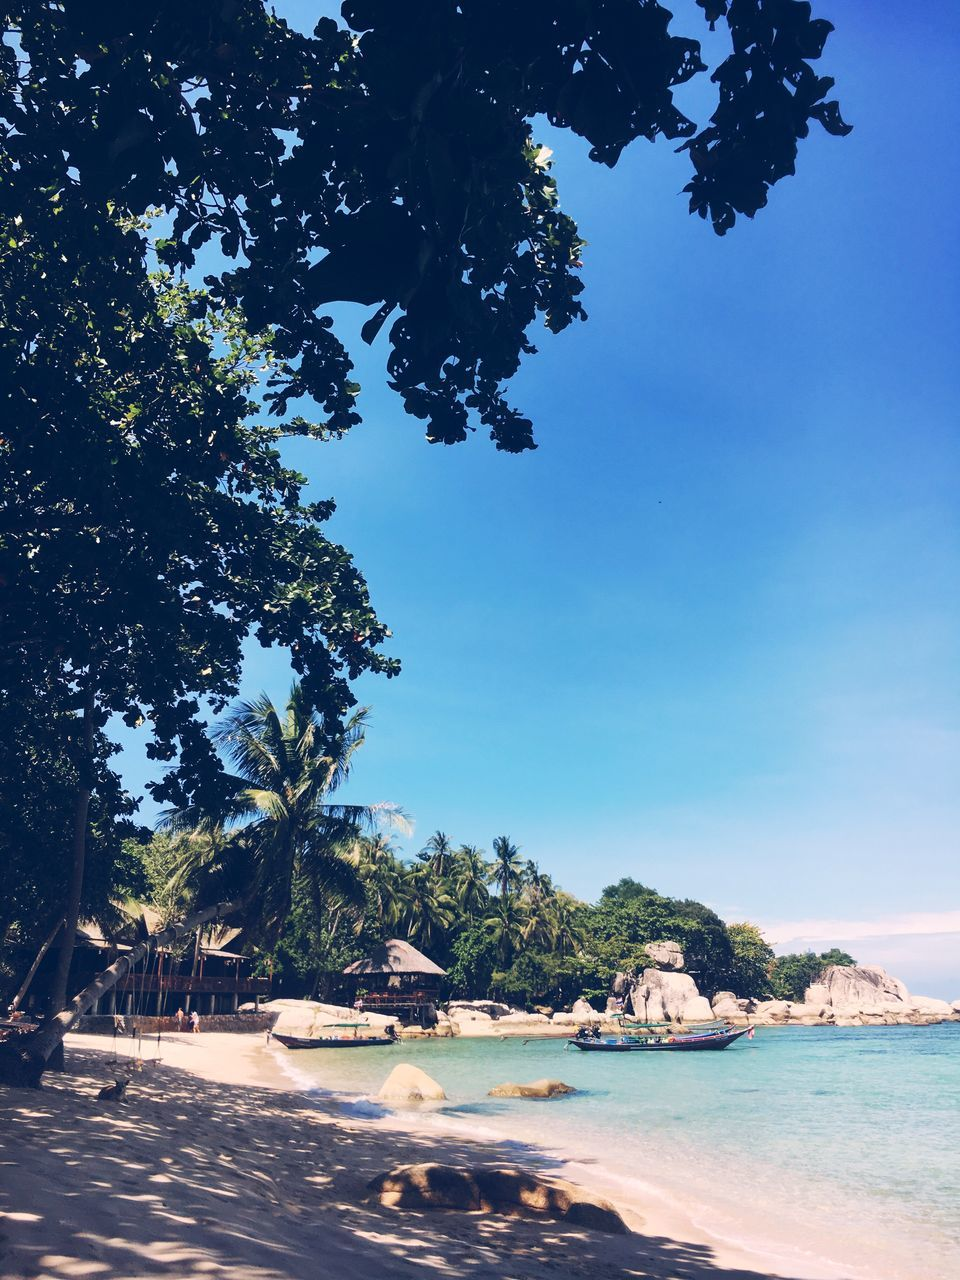 tree, sea, tranquil scene, sunlight, water, tranquility, beach, outdoors, scenics, blue, sky, nature, day, beauty in nature, no people, built structure, swimming pool, architecture, palm tree, clear sky